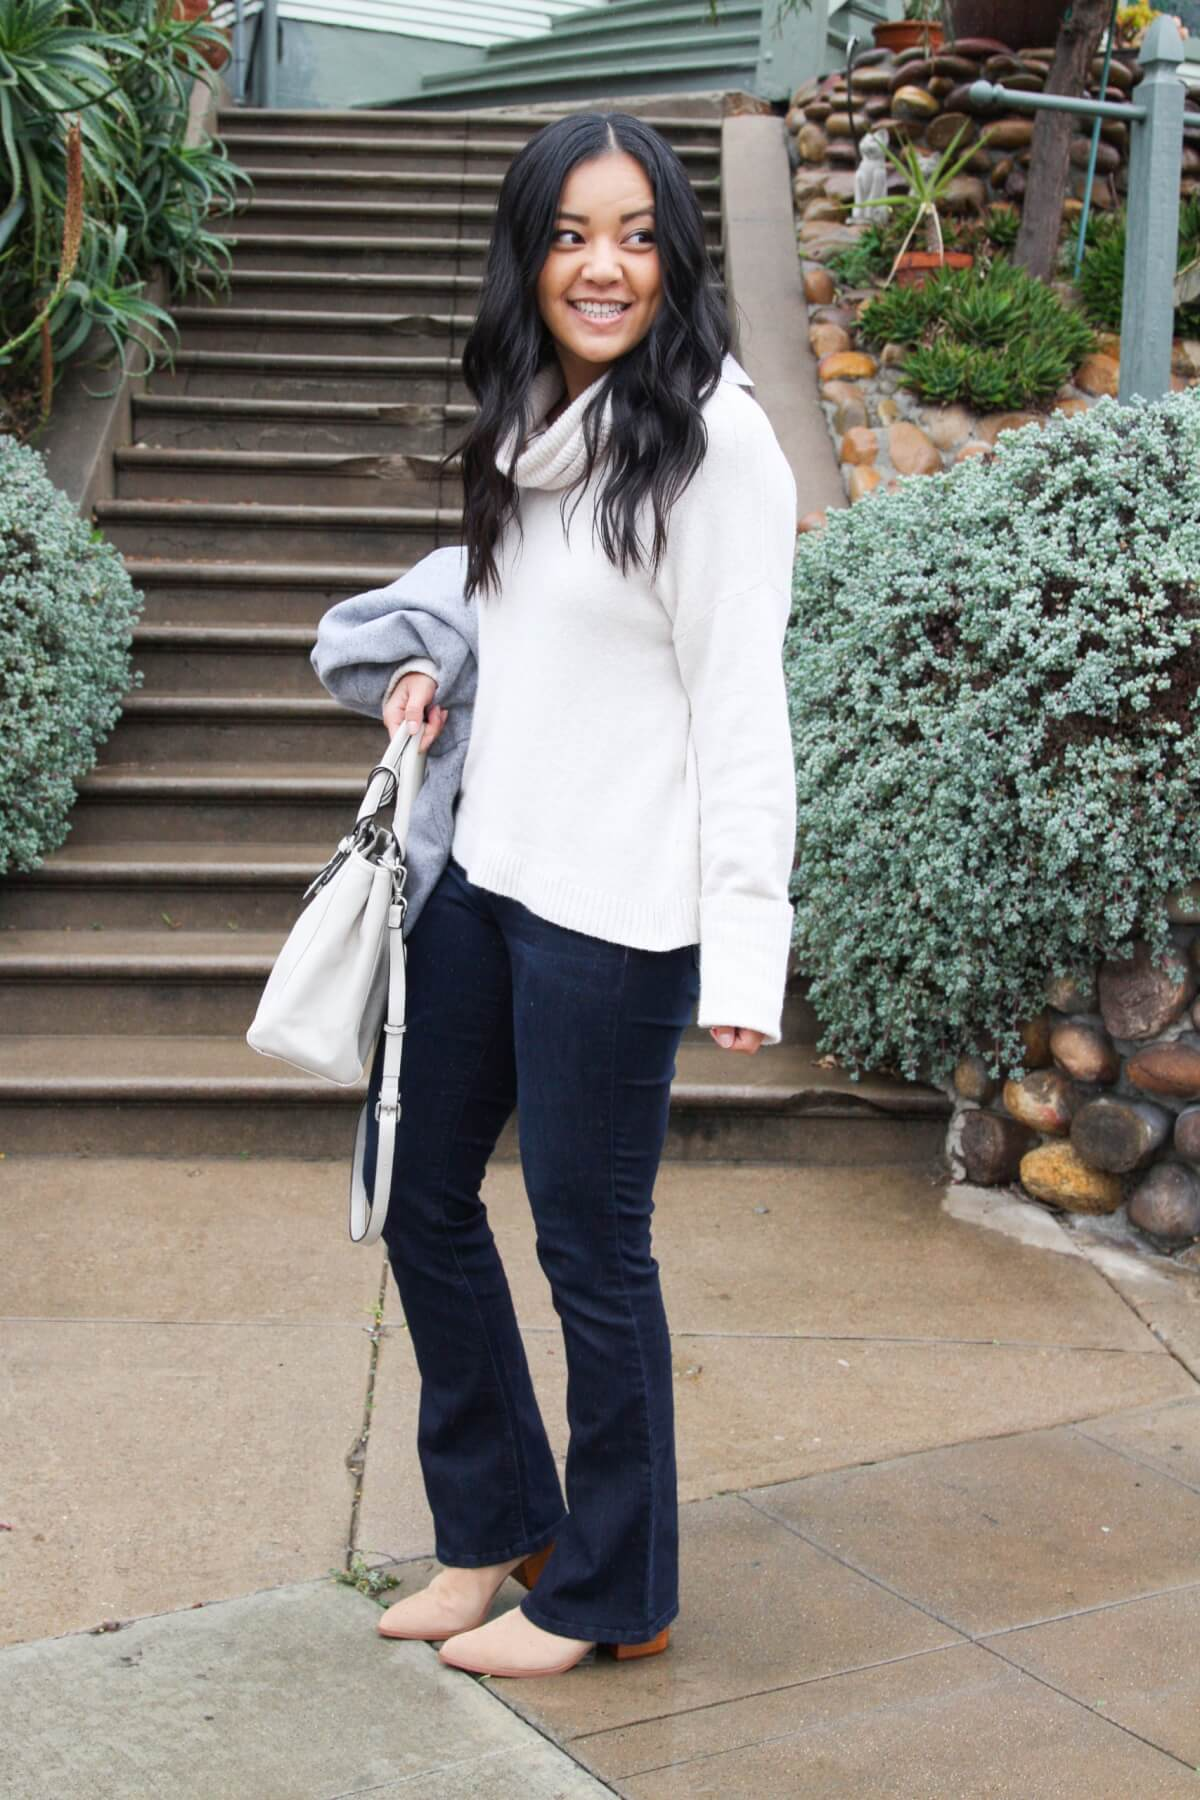 winter outfit: white turtleneck sweater + blue jeans + white handbag